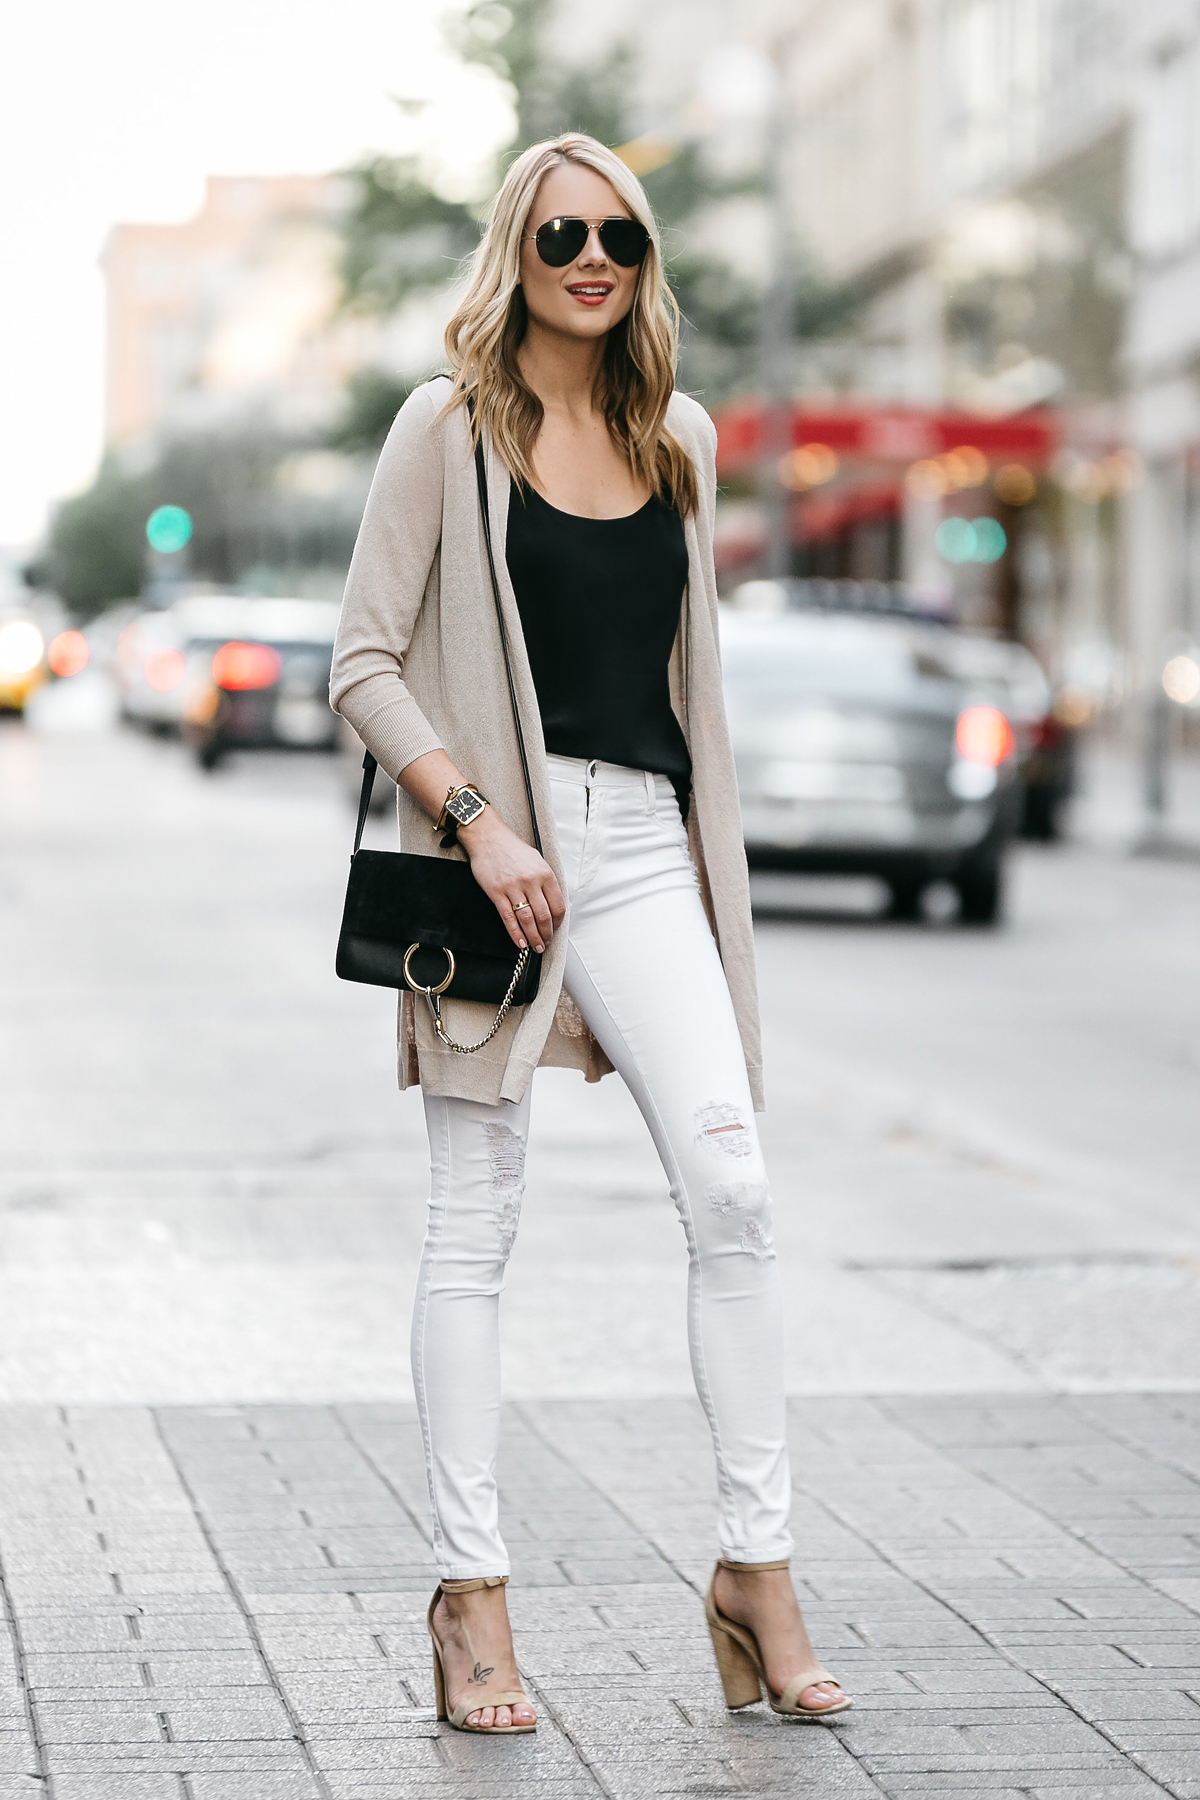 Fashion Jackson, Dallas Blogger, Fashion Blogger, Street Style, Long Beige Cardigan, Black Cami Tank, White Ripped Skinny Jeans, Chloe Faye Handbag, Tan Ankle Strap Heeled Sandals